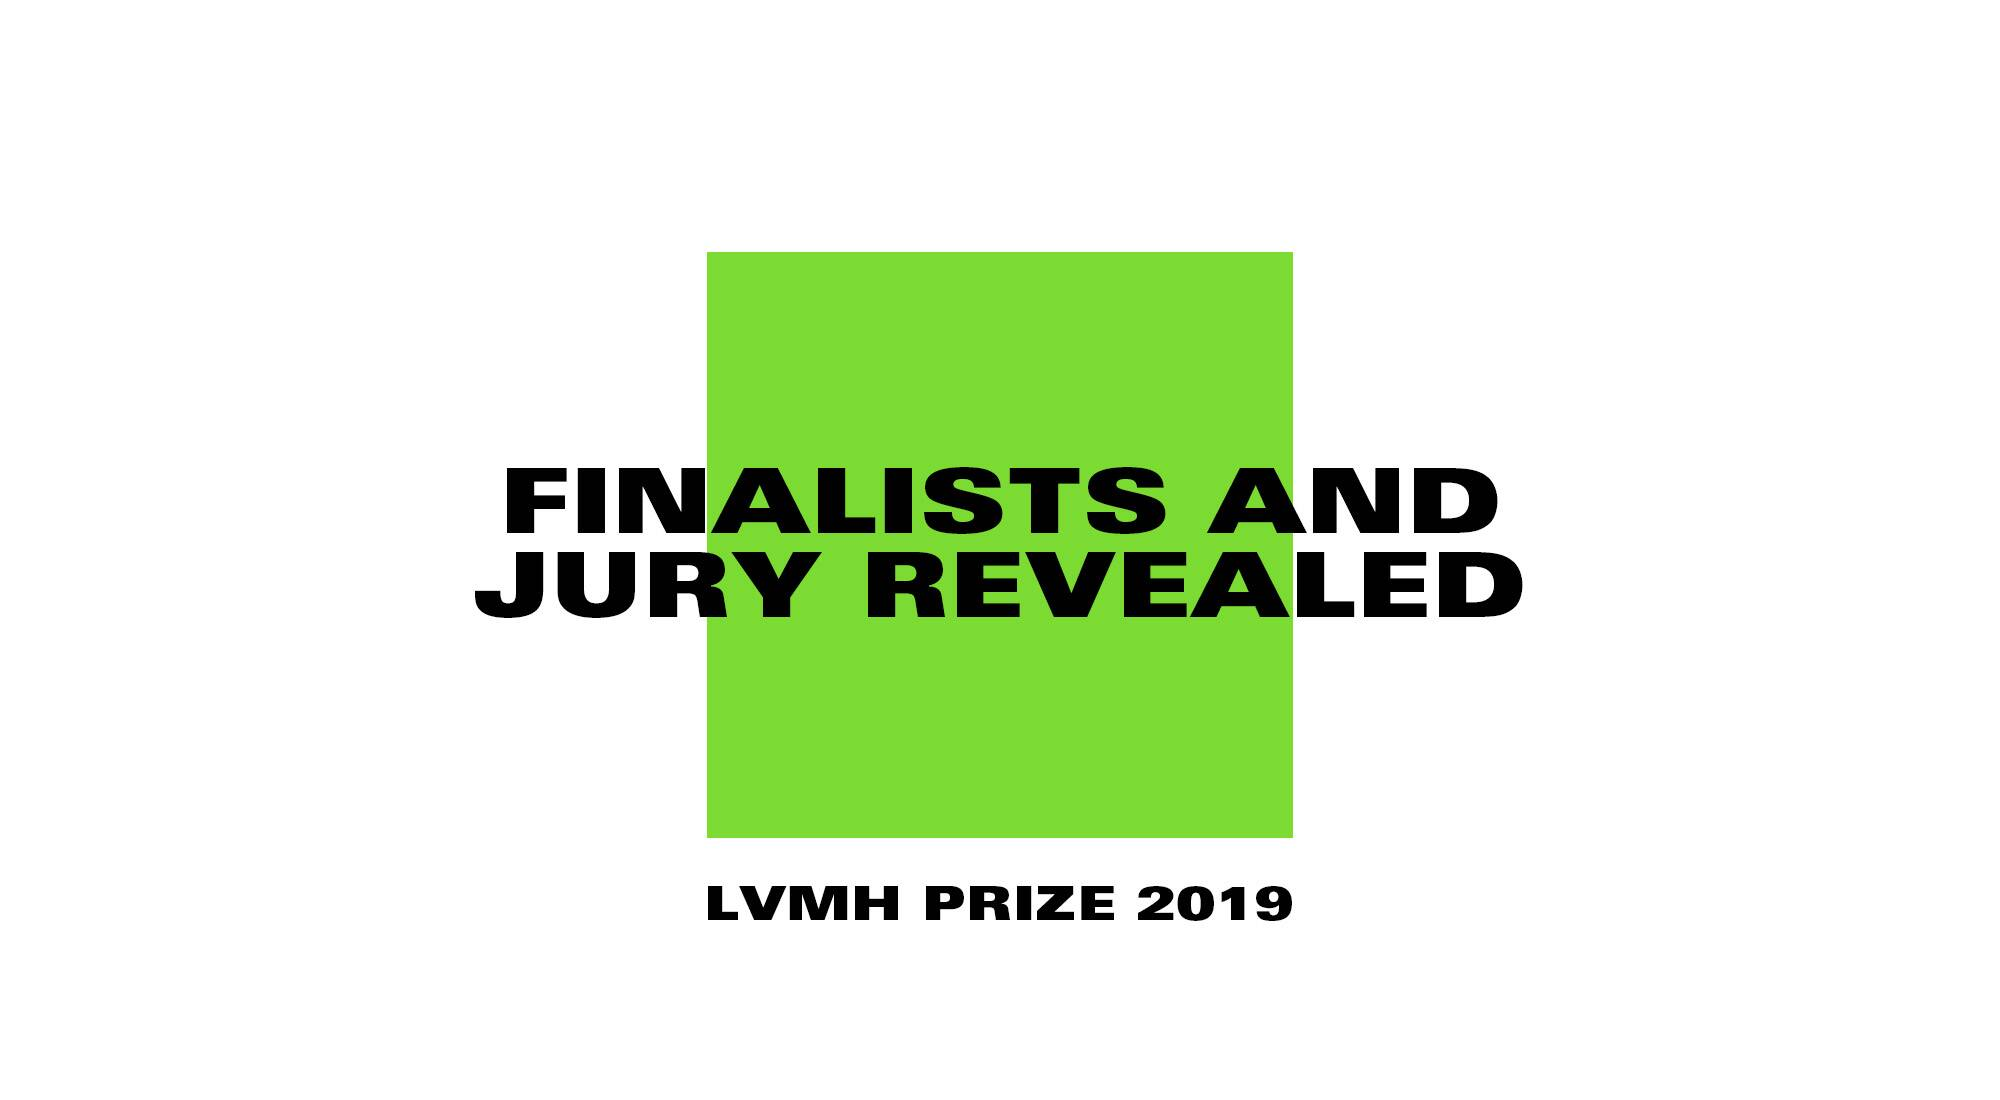 Lvmh Announces The List Of The 8 Finalists And The Jury Of The 2019 Lvmh Prize For Young Fashion Designers Lvmh